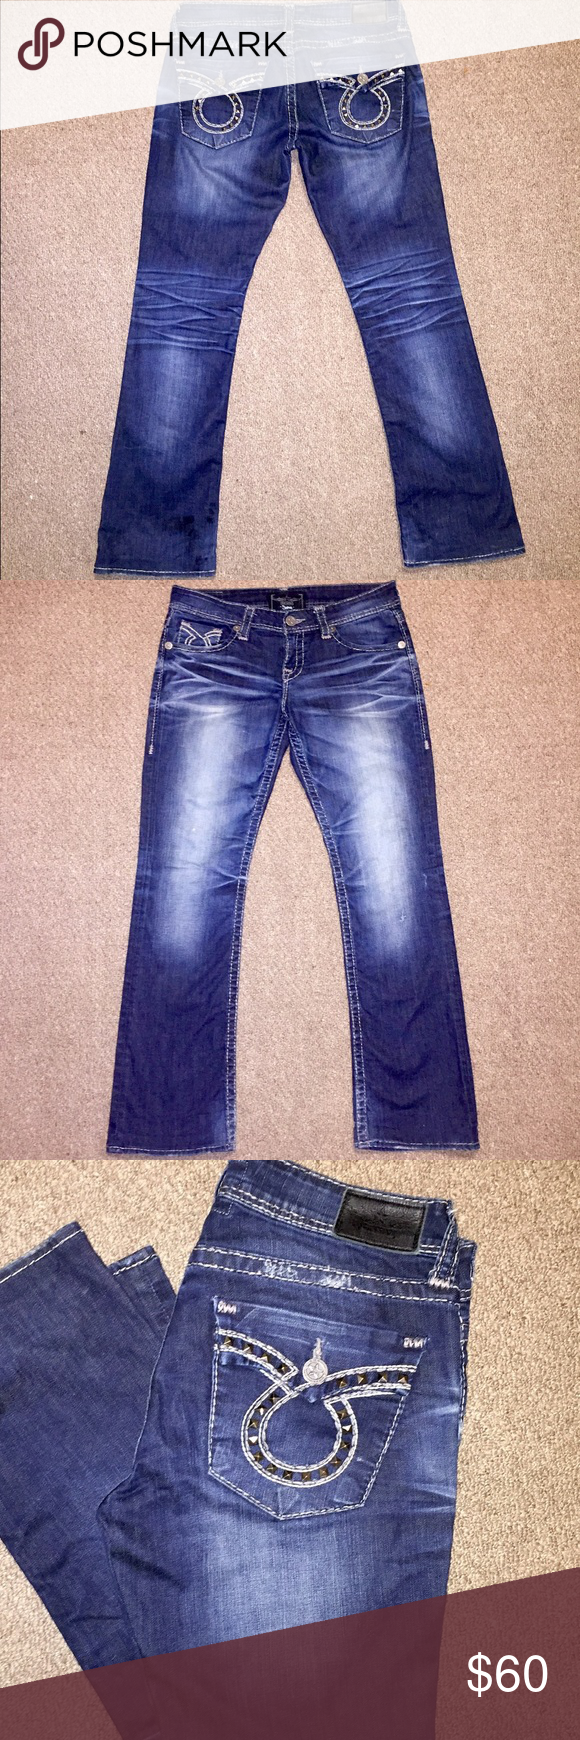 041e2ee6e48 ❤ ❤️Gorgeous Big Star Sophie Boot Cut Jeans ❤ ❤ Absolutely stunning